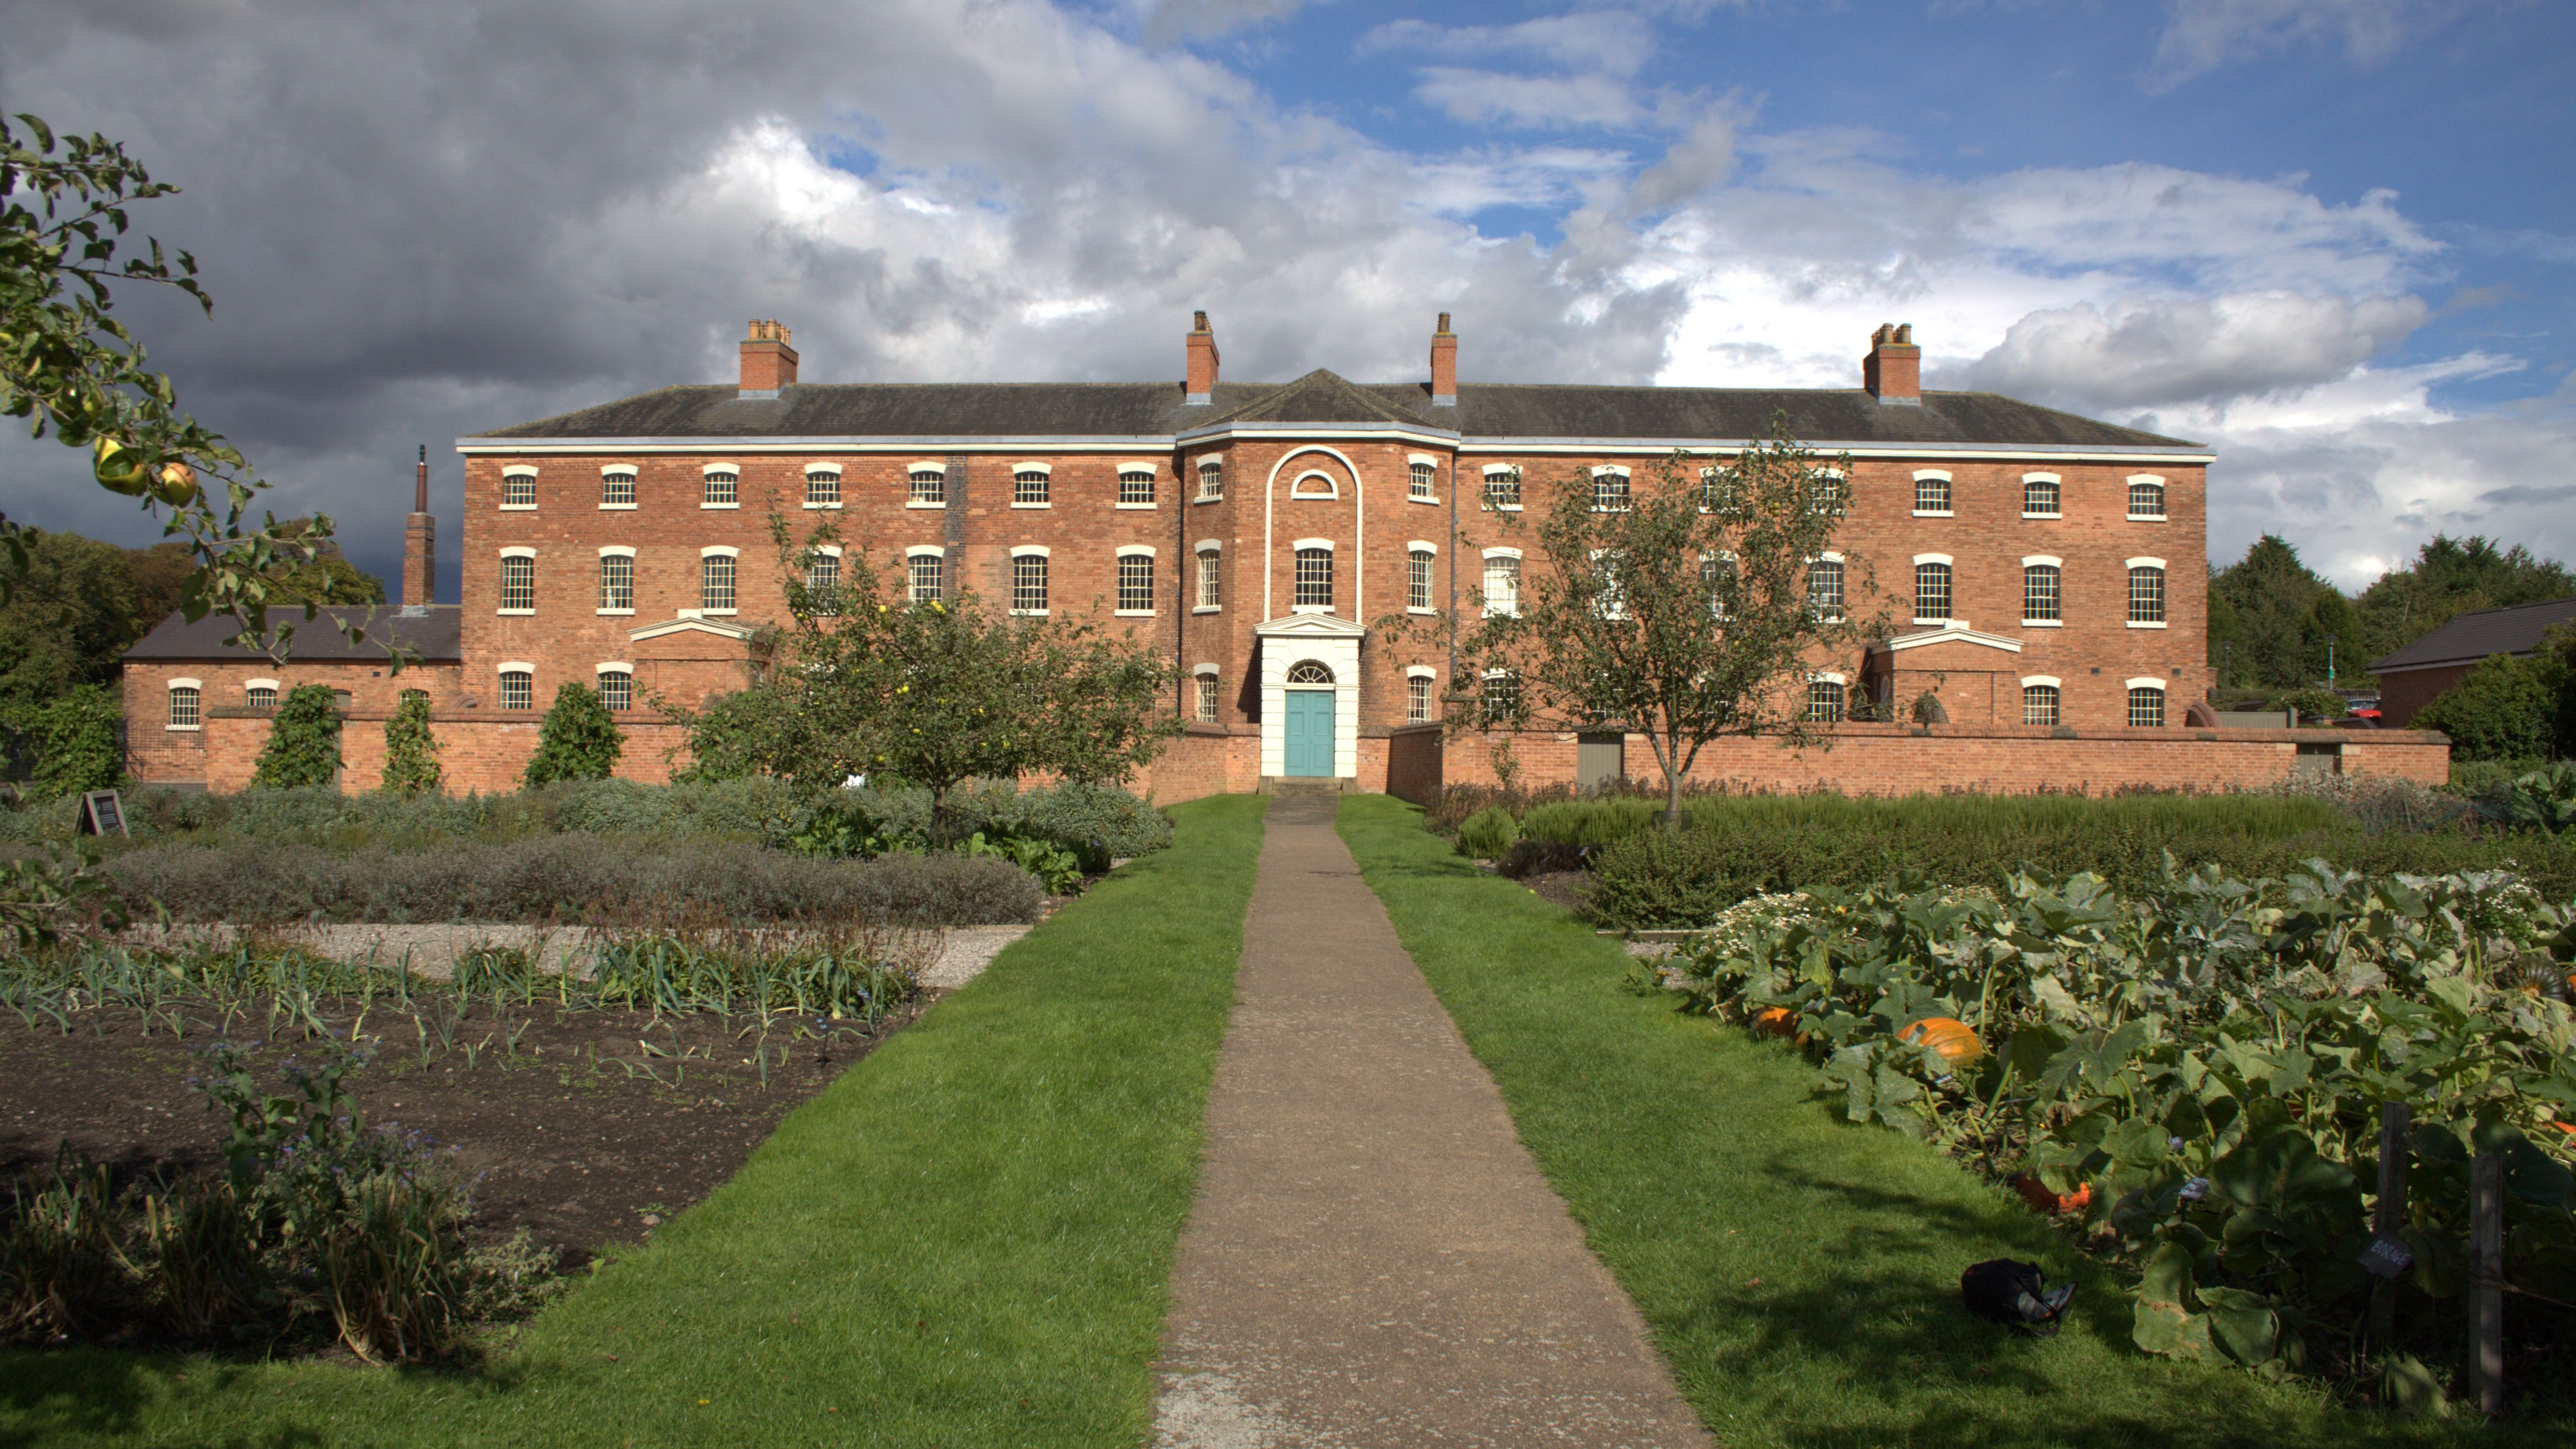 View of the front of The Workhouse in autumn showing the garden with pumpkins and apples